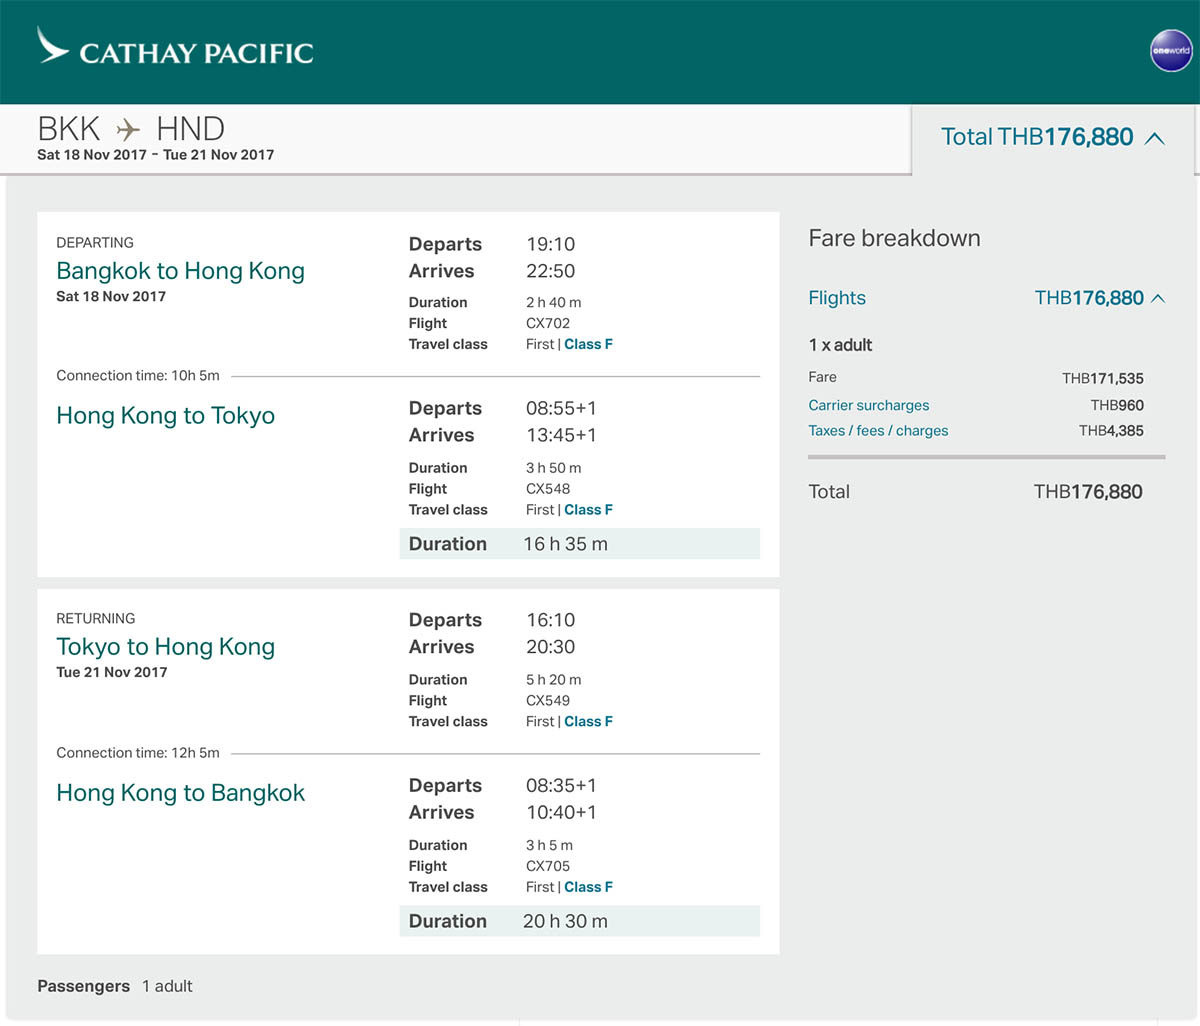 Cathay Pacific First Class Return